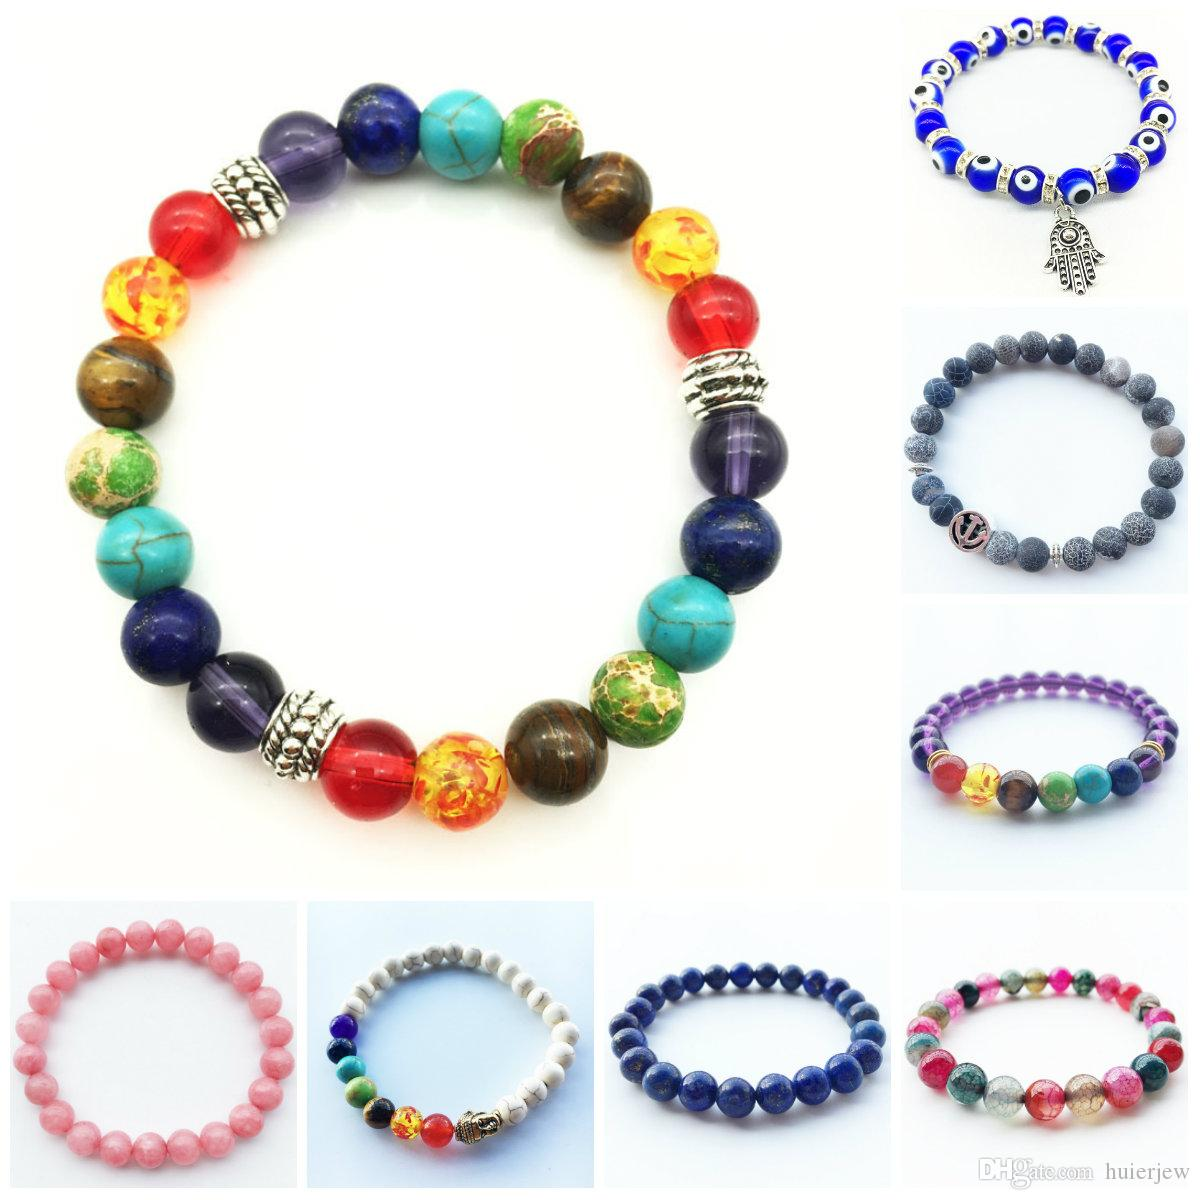 beads colorful with cheap buy fancy online om jewelry rakhi wholesale brother auspicious